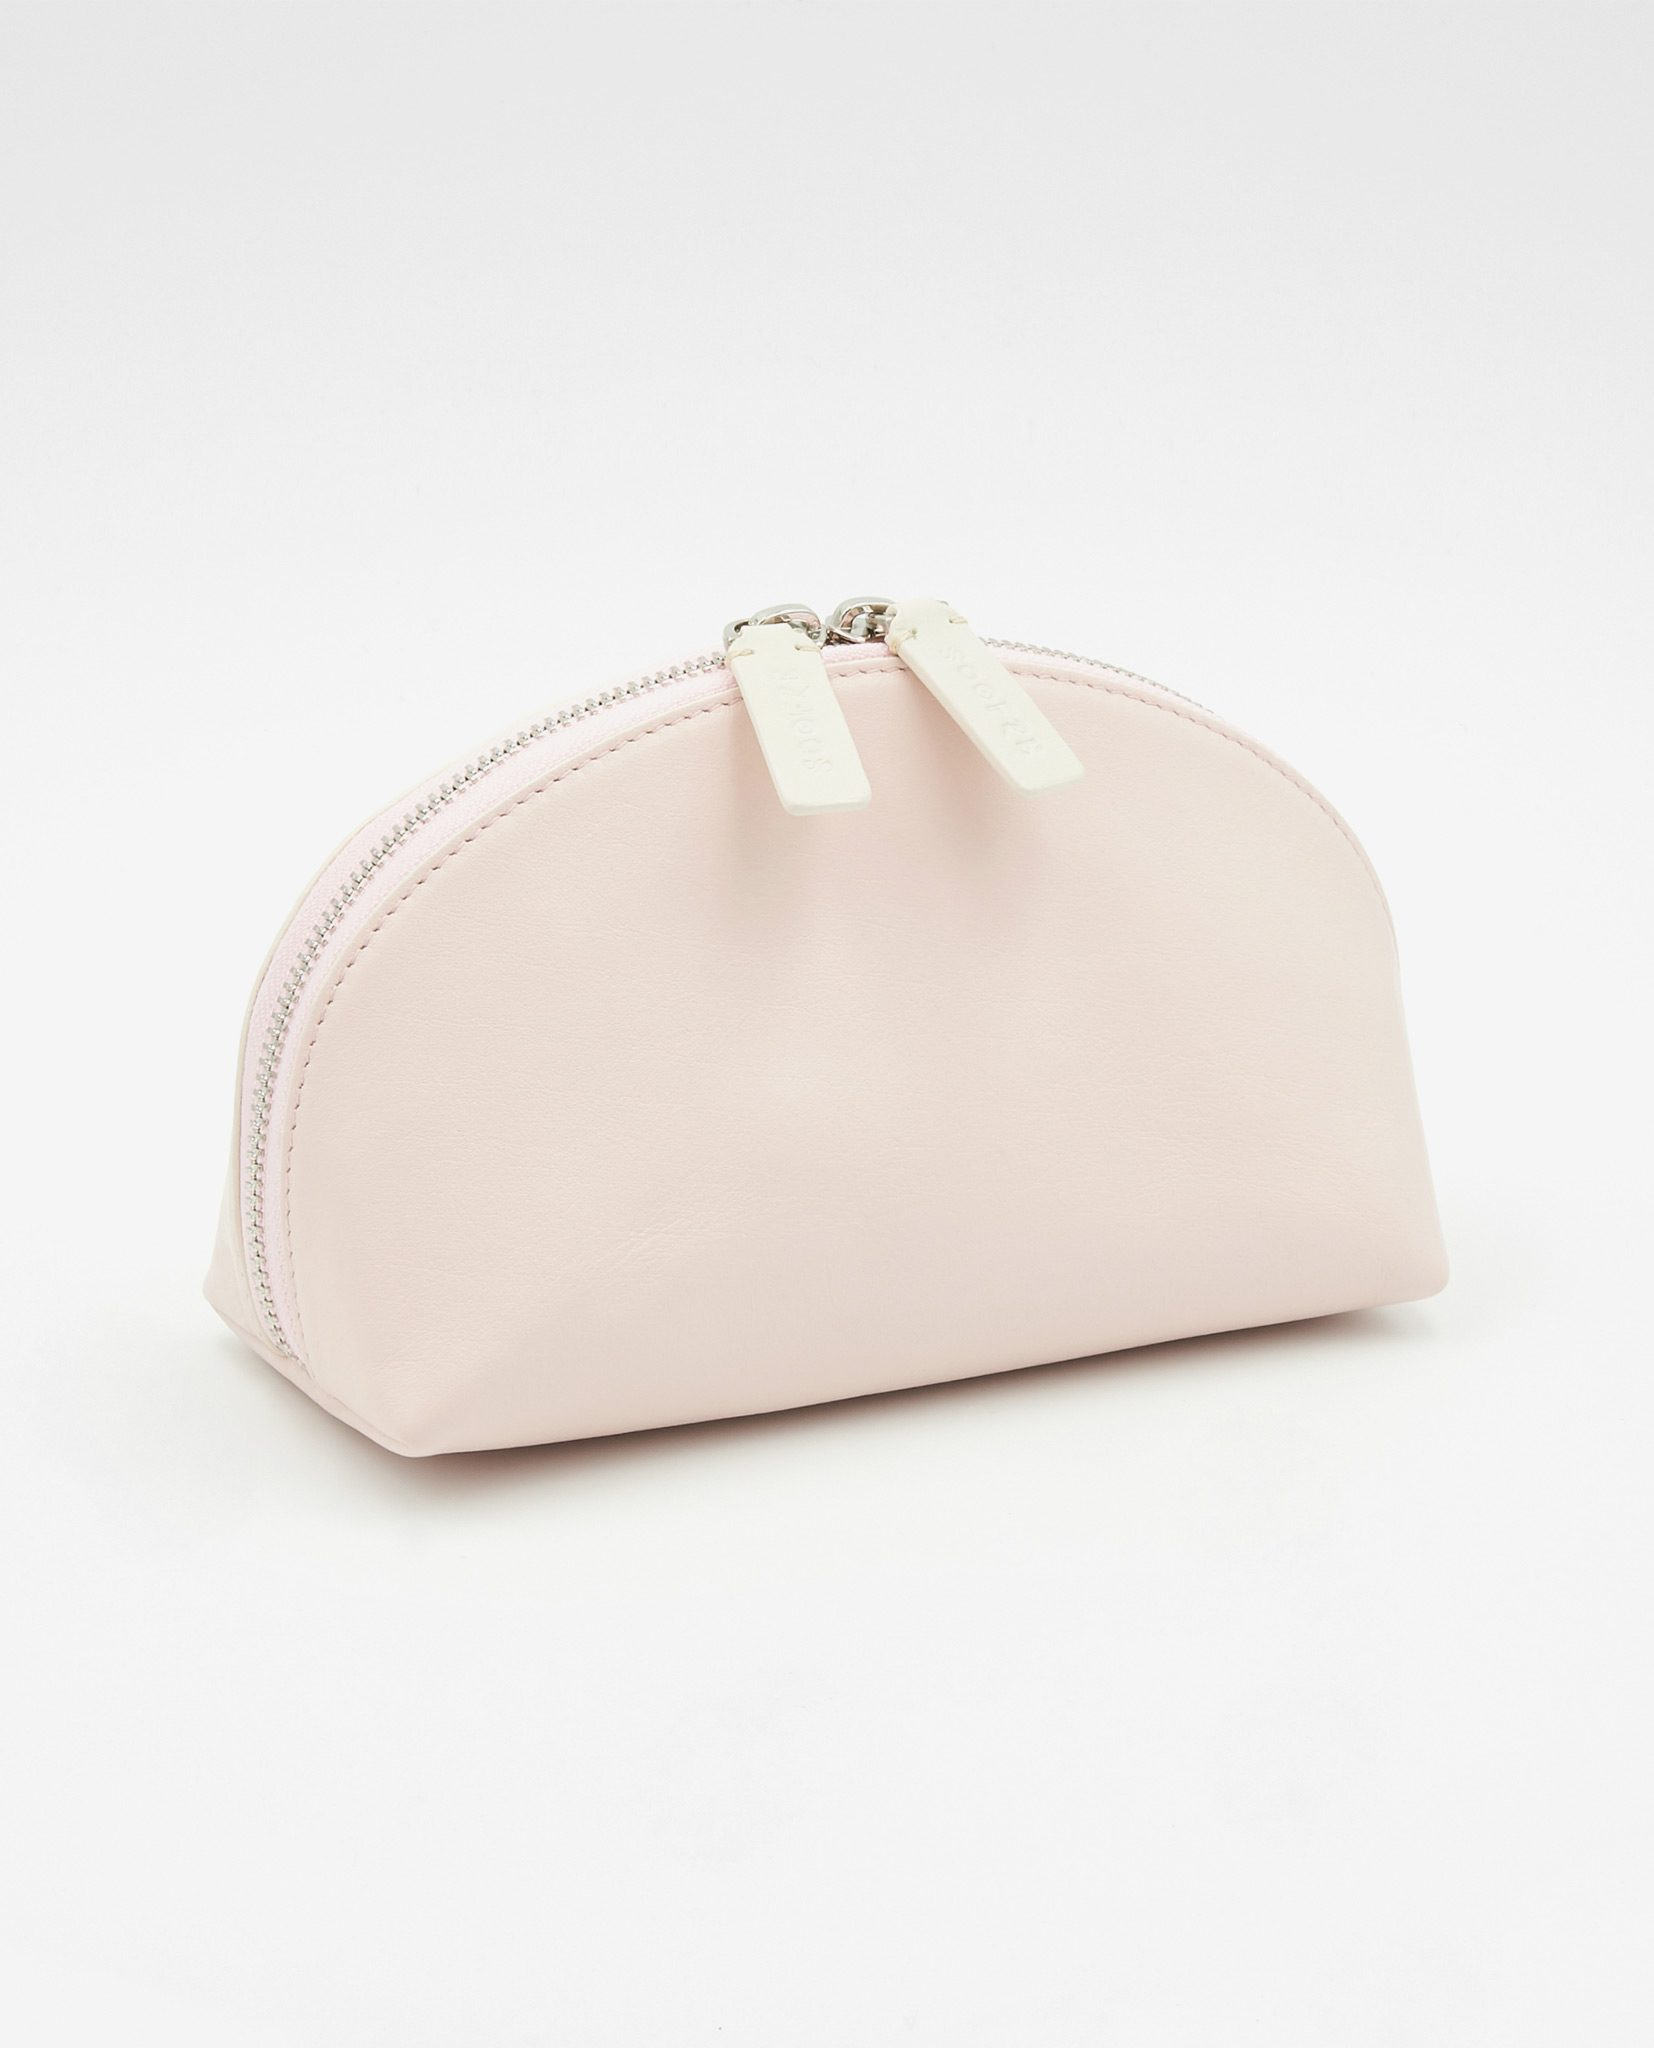 Soofre Smooth Leather Cosmetic Bag Blush Beige